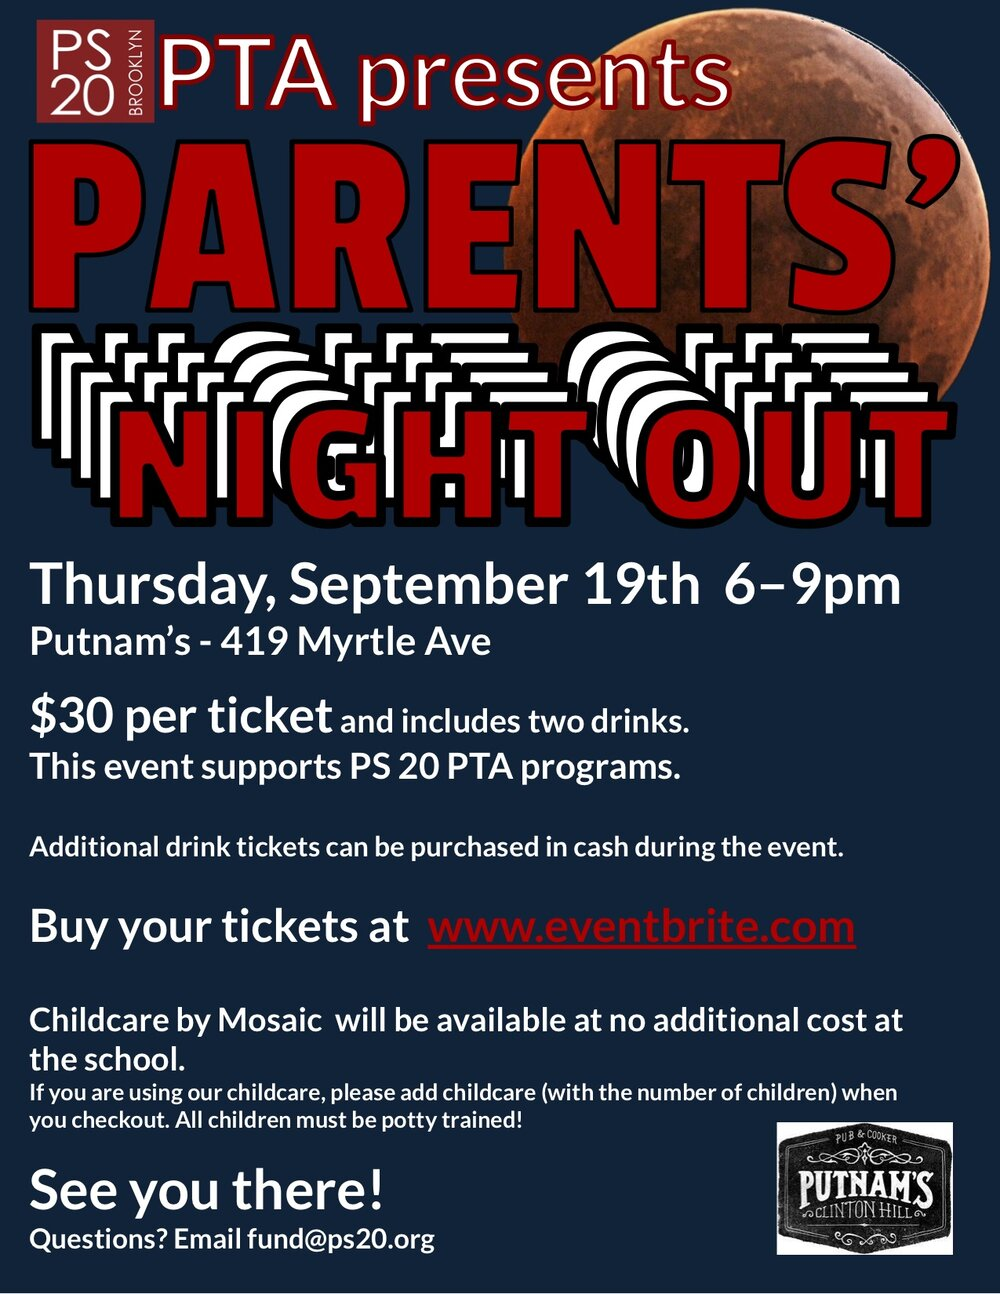 Back to School Parents Night Out - Sept 19th 2019.jpg